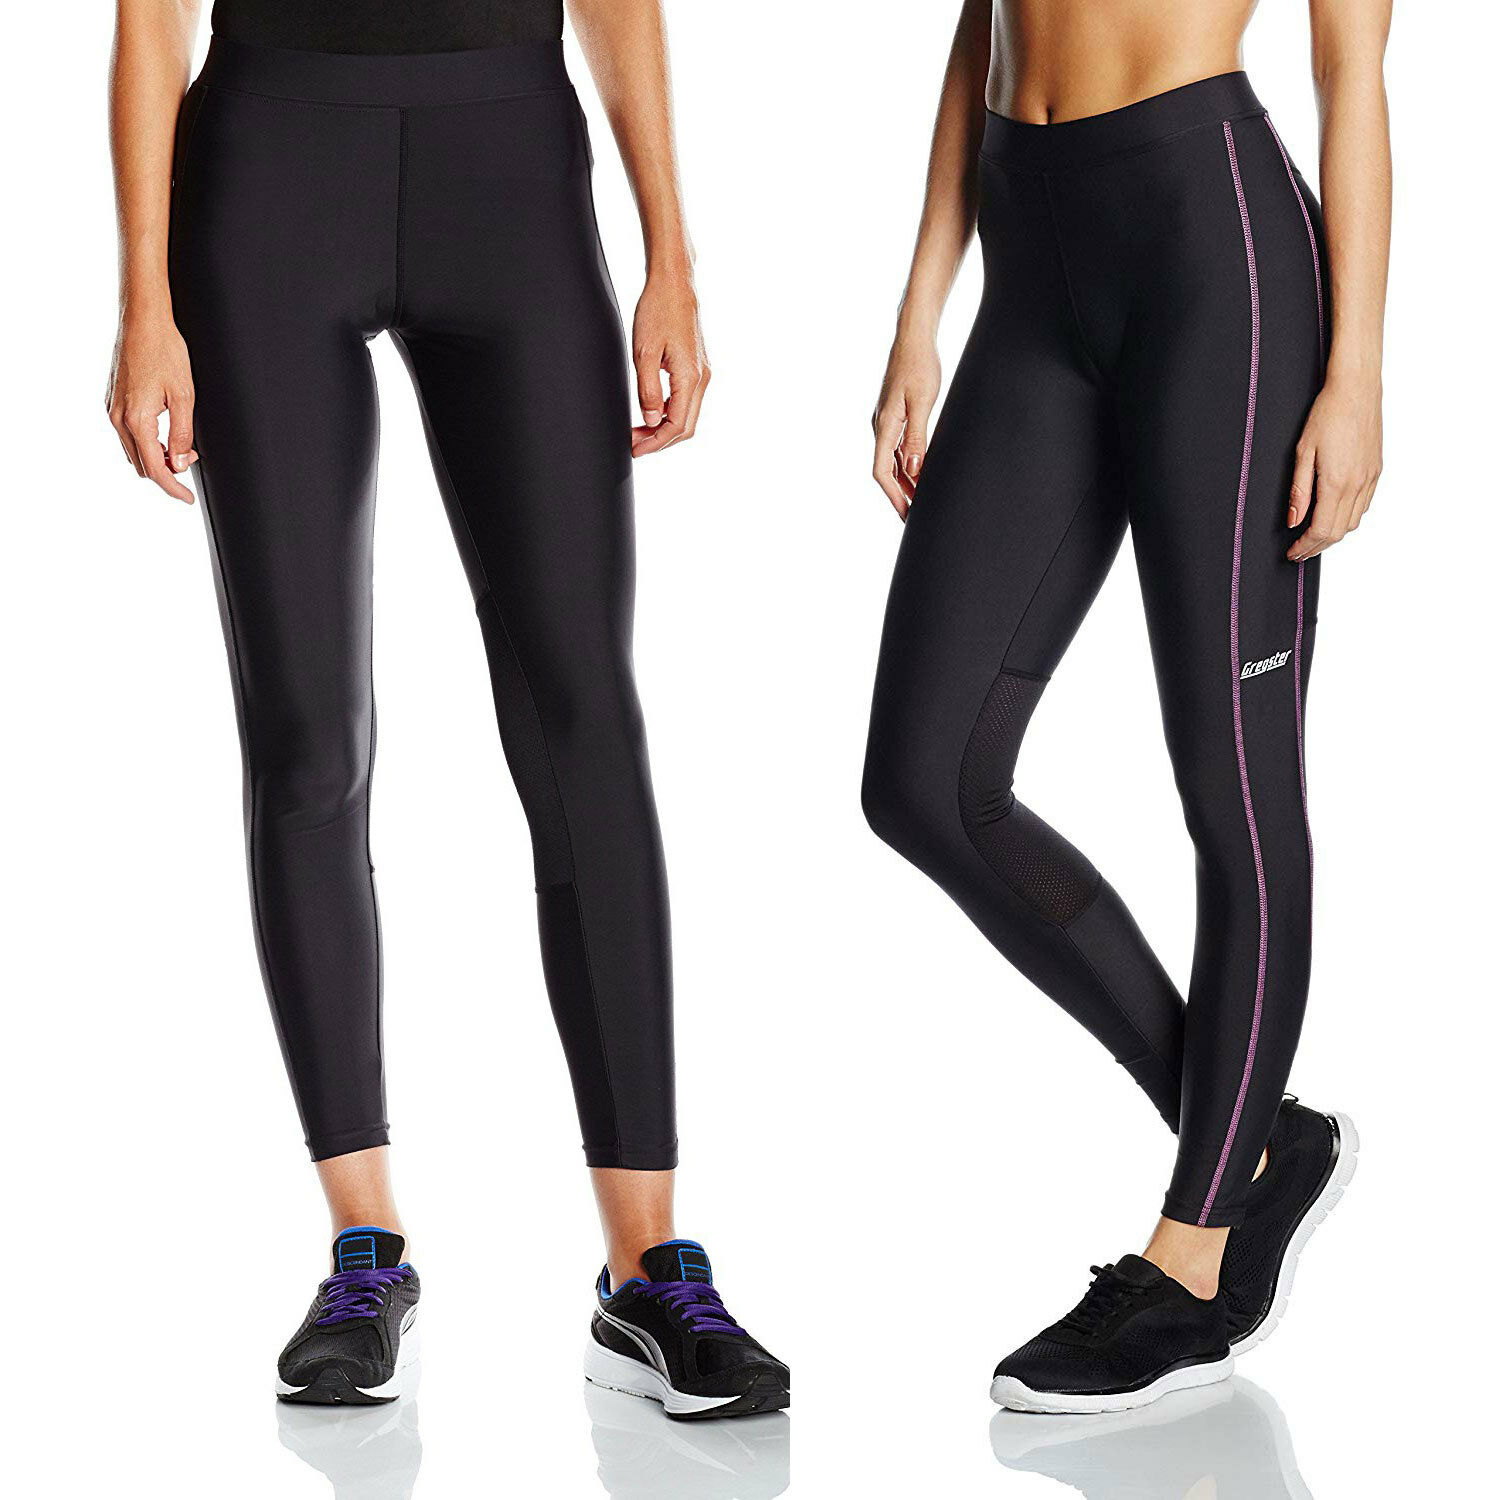 2d6e4d9b8709ef Gregster Laufhose Damen Sporthose Lang Jogginghose Kompression Tights  Training